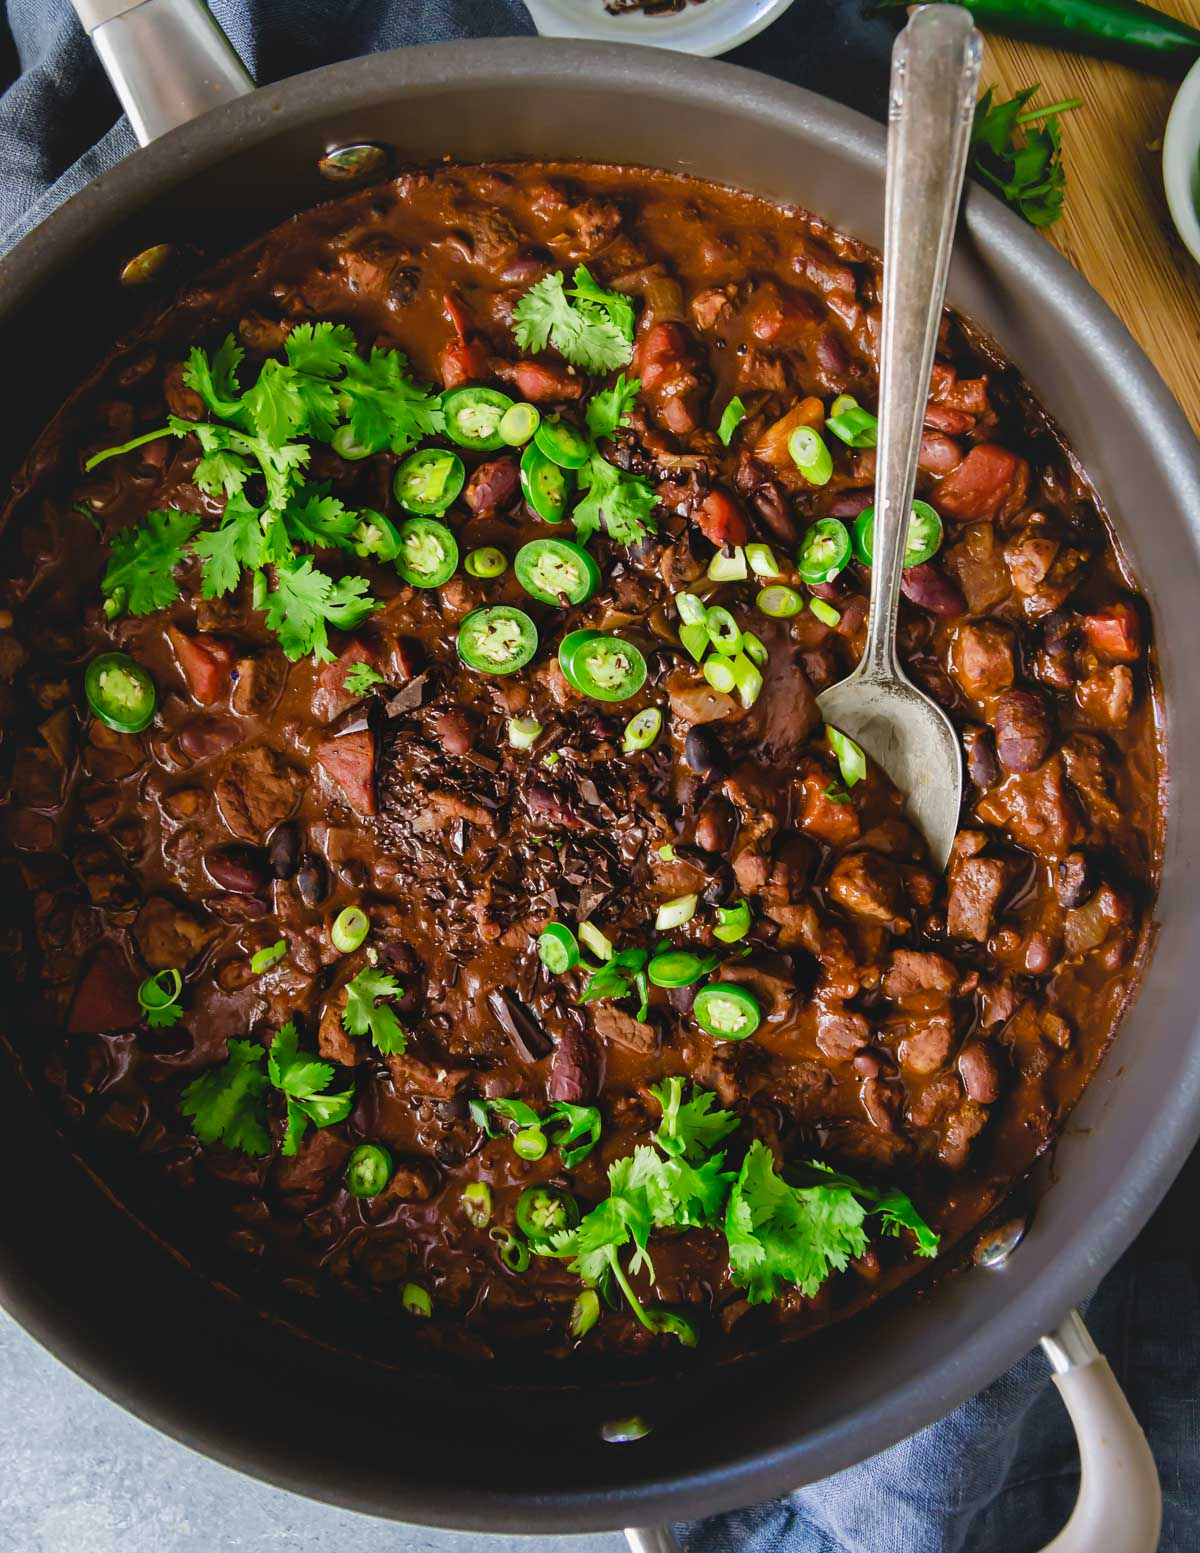 Lamb chili made with lamb stew meat, smoky spices, a mix of beans and bittersweet chocolate.